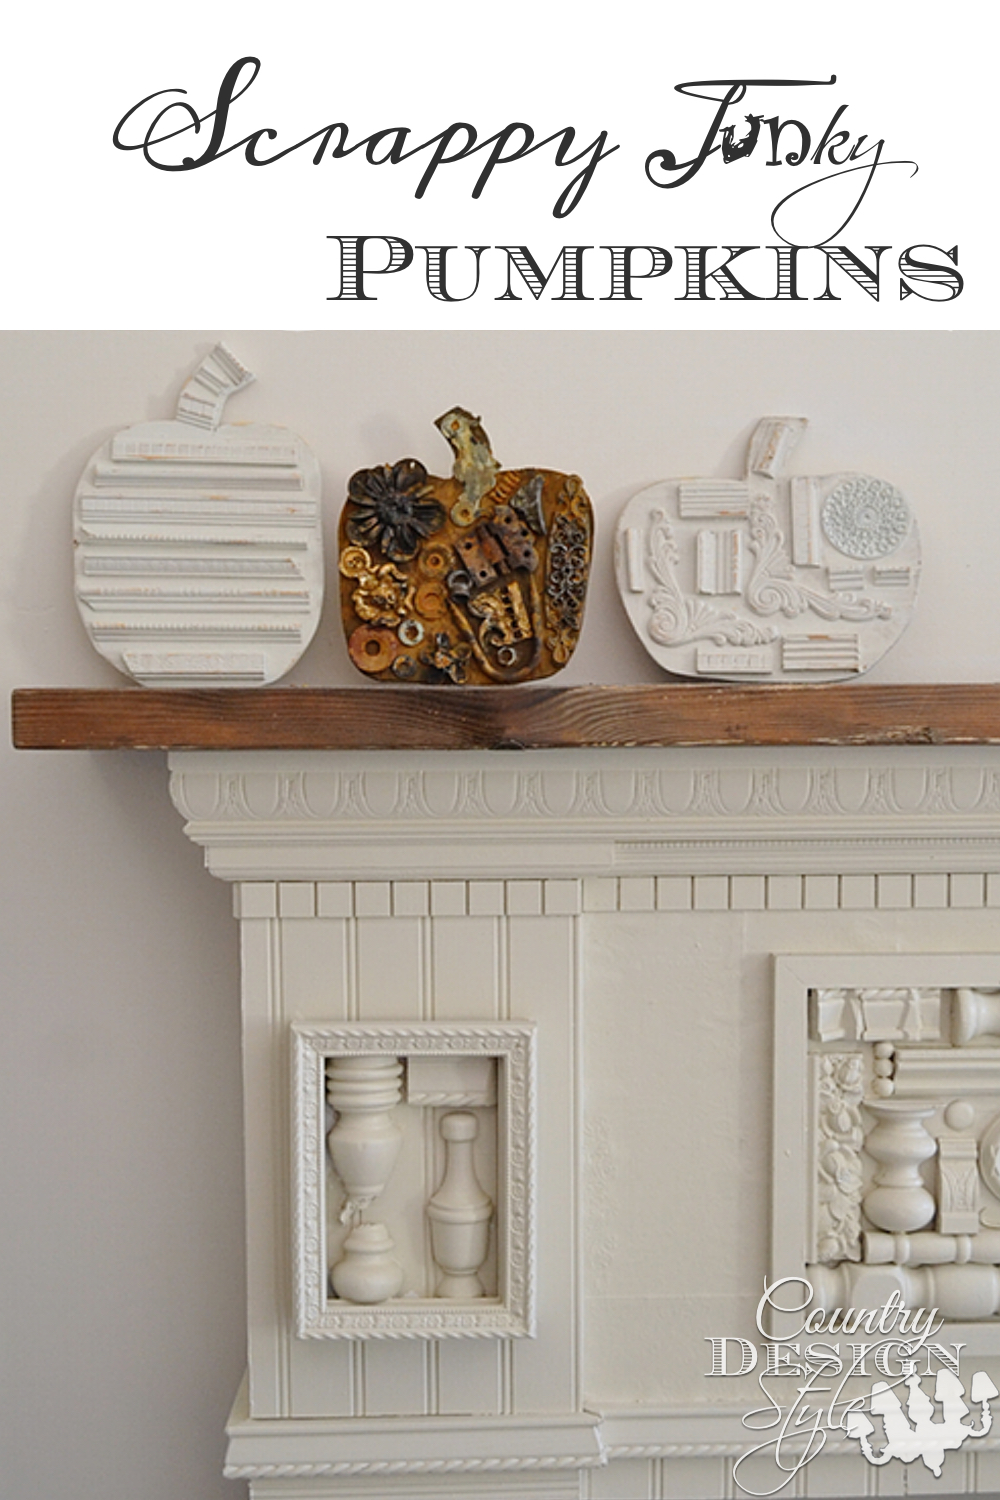 Scrappy Junky Pumpkins made from plywood cutouts and junk sitting on DIY fireplace mantel | countrydesignstyle.com